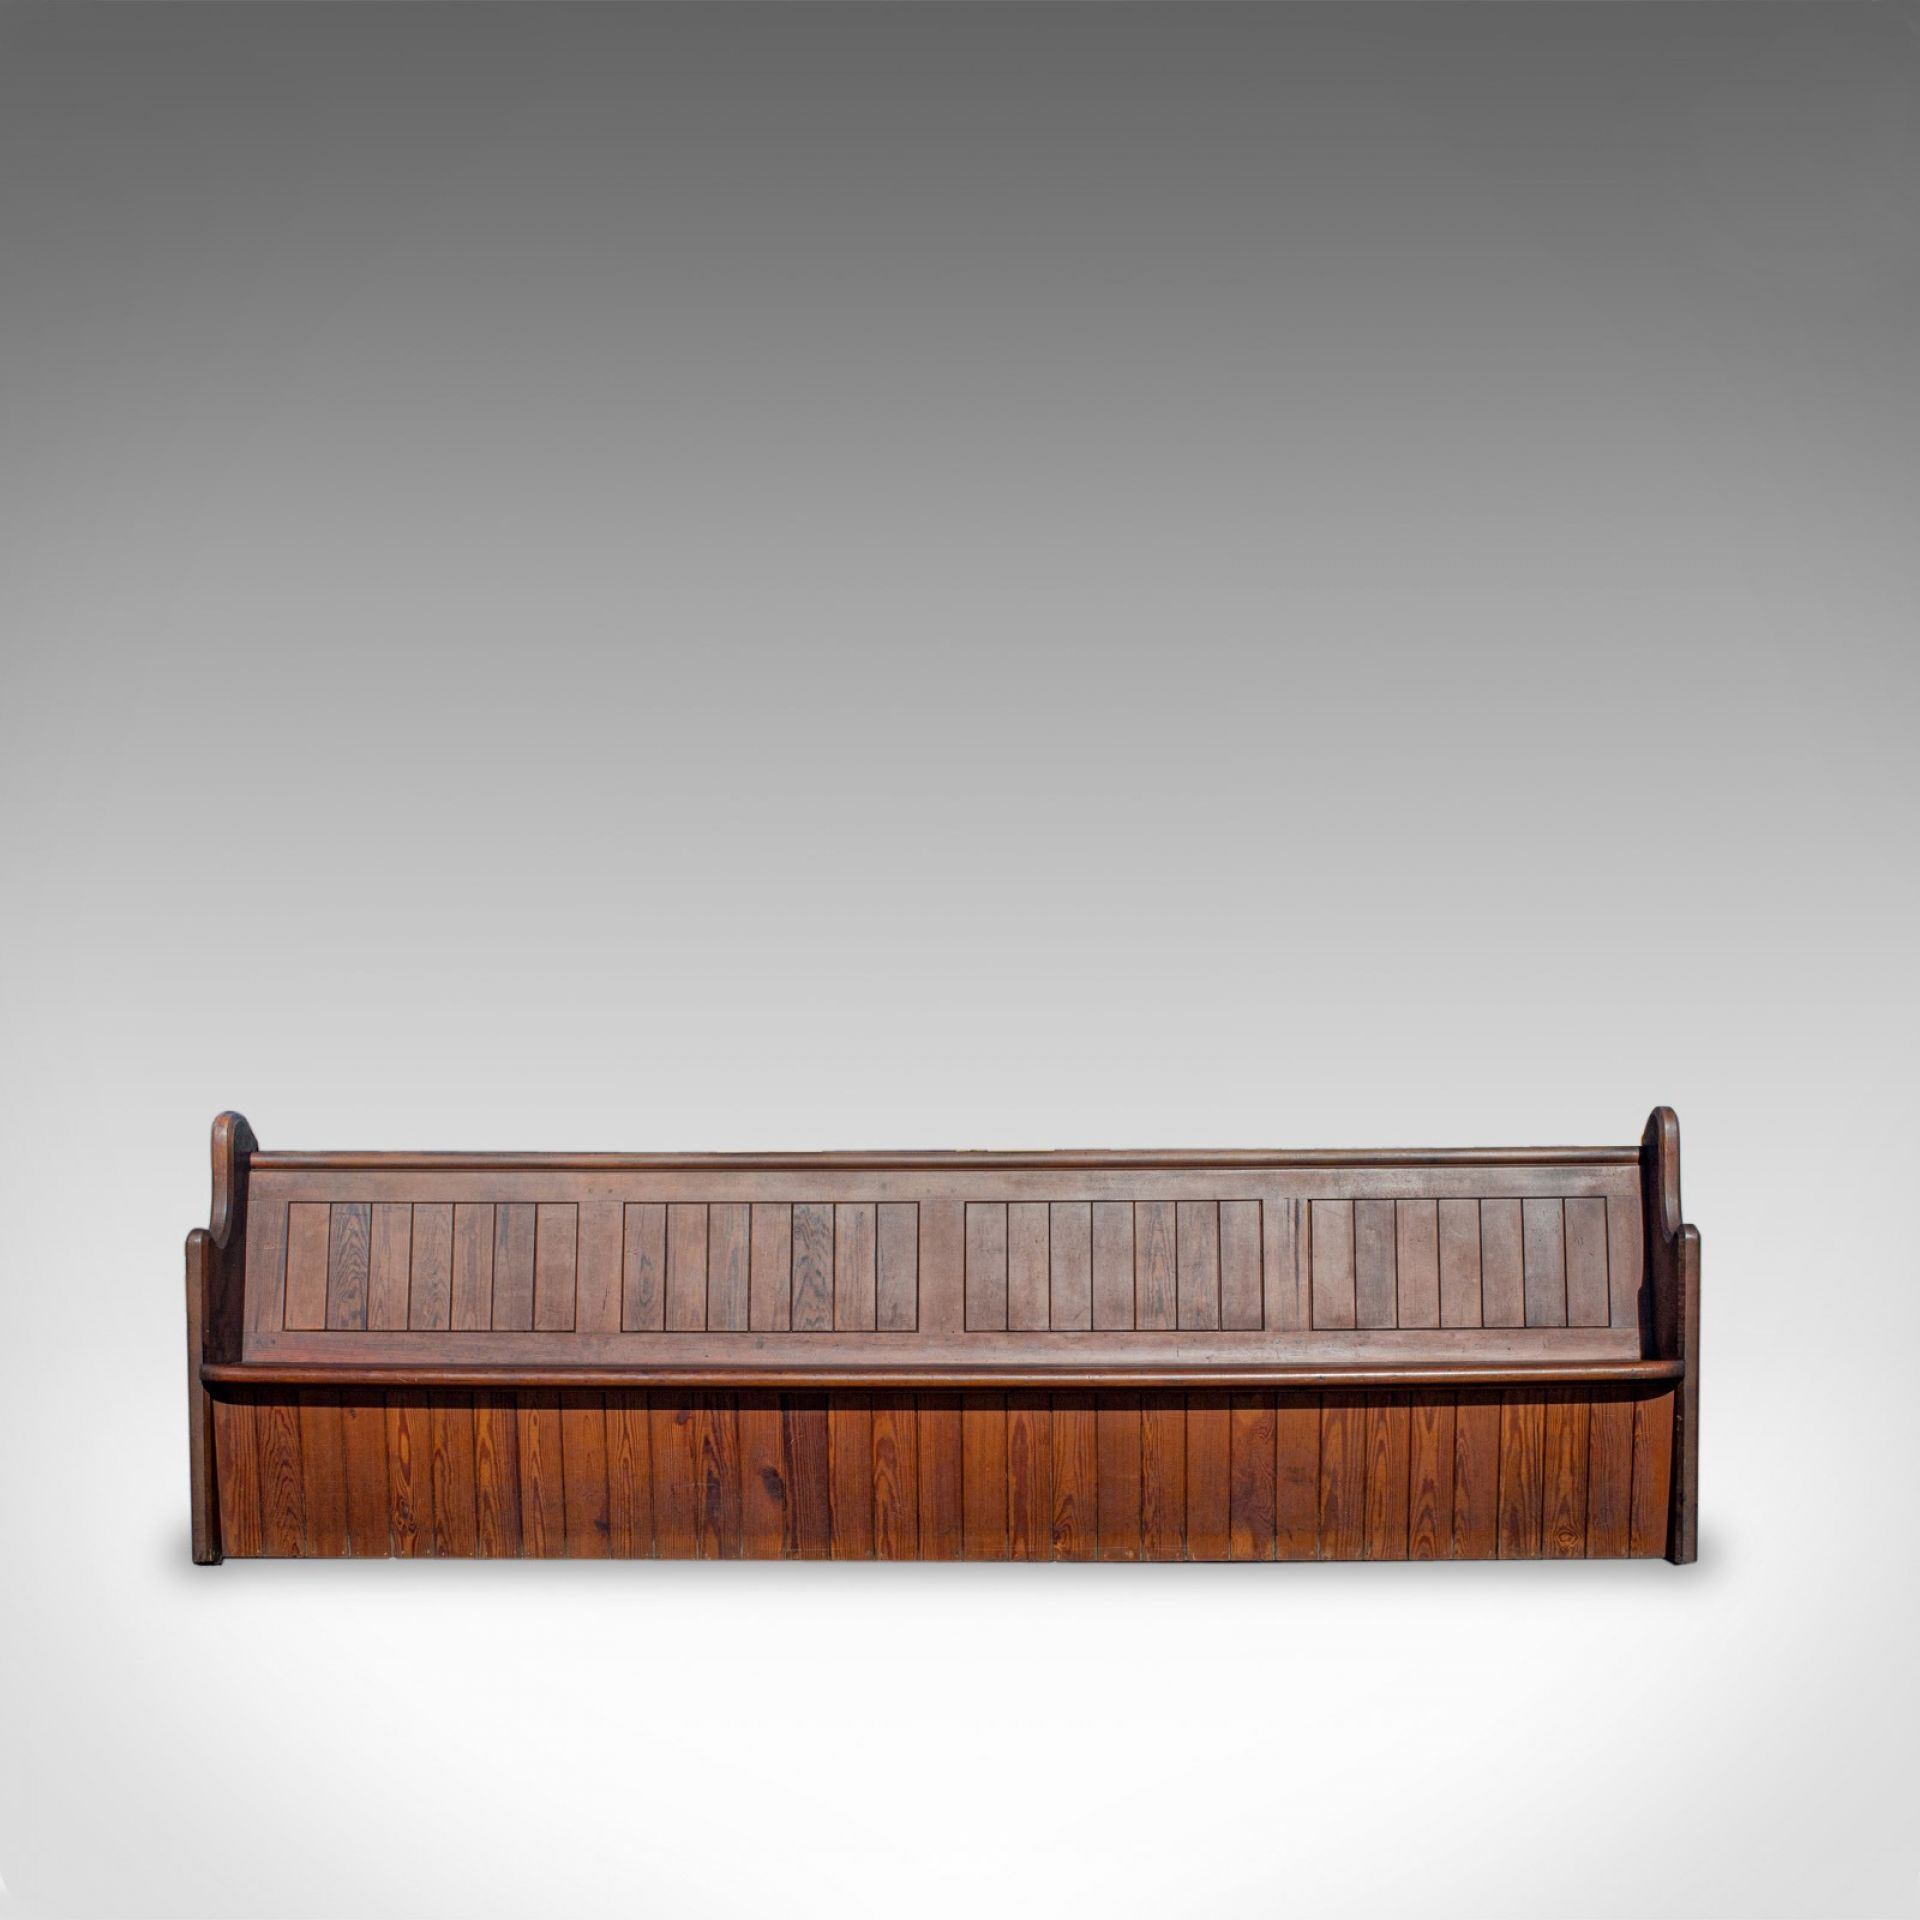 Large Antique Pew, 10 feet, English, Pitch Pine, Bench Seat, 7-8, 19th Century